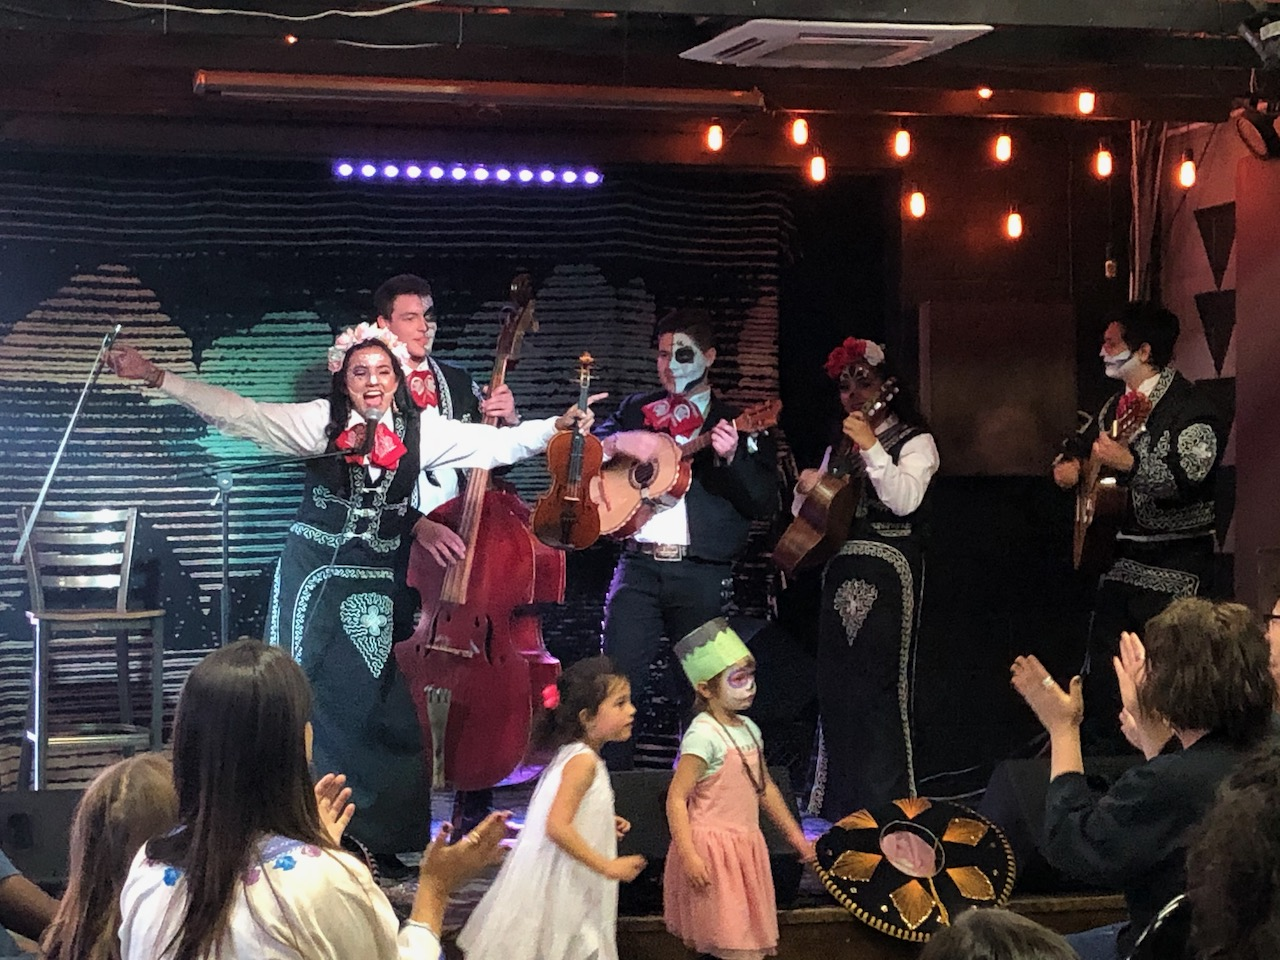 Young mariachi band performing in front of an all-ages audience during Día de los Muertos celebration